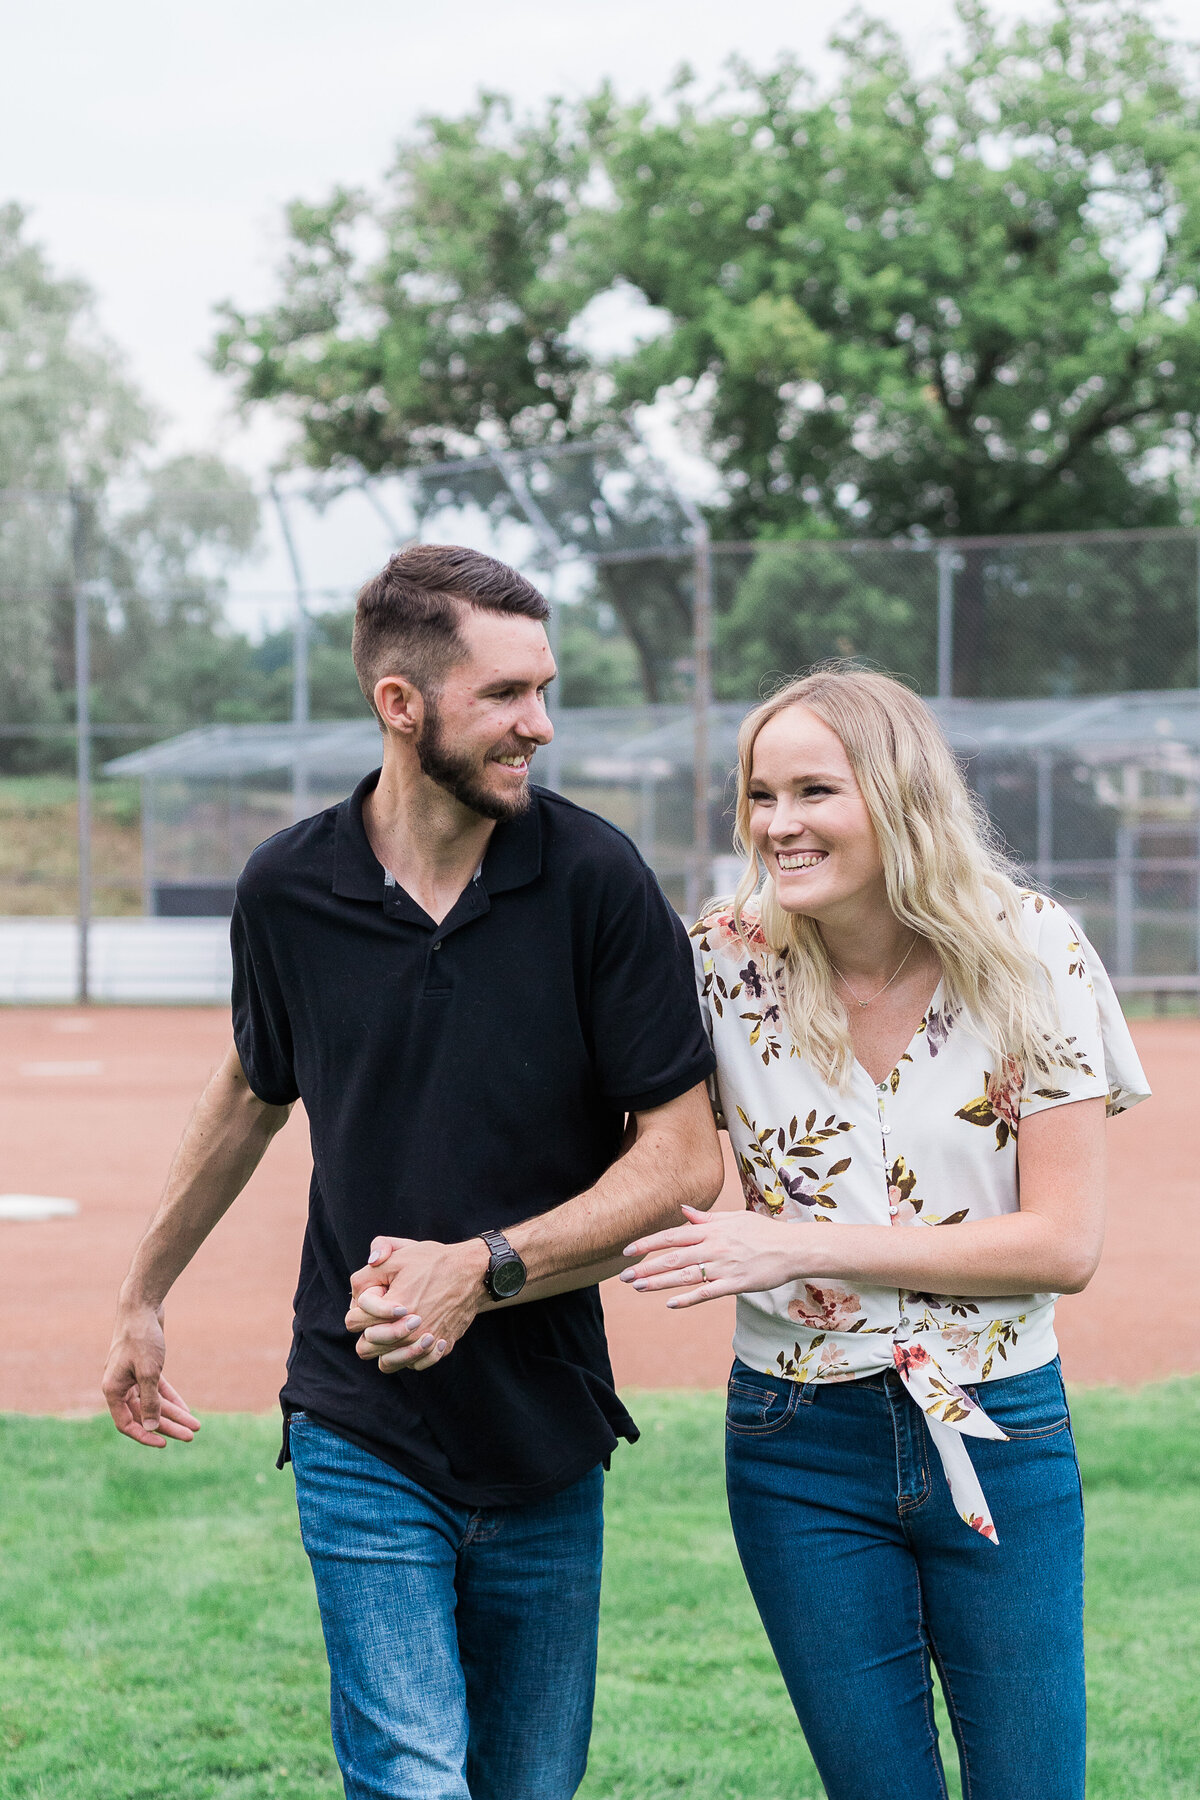 couple laughing together in engagement photo